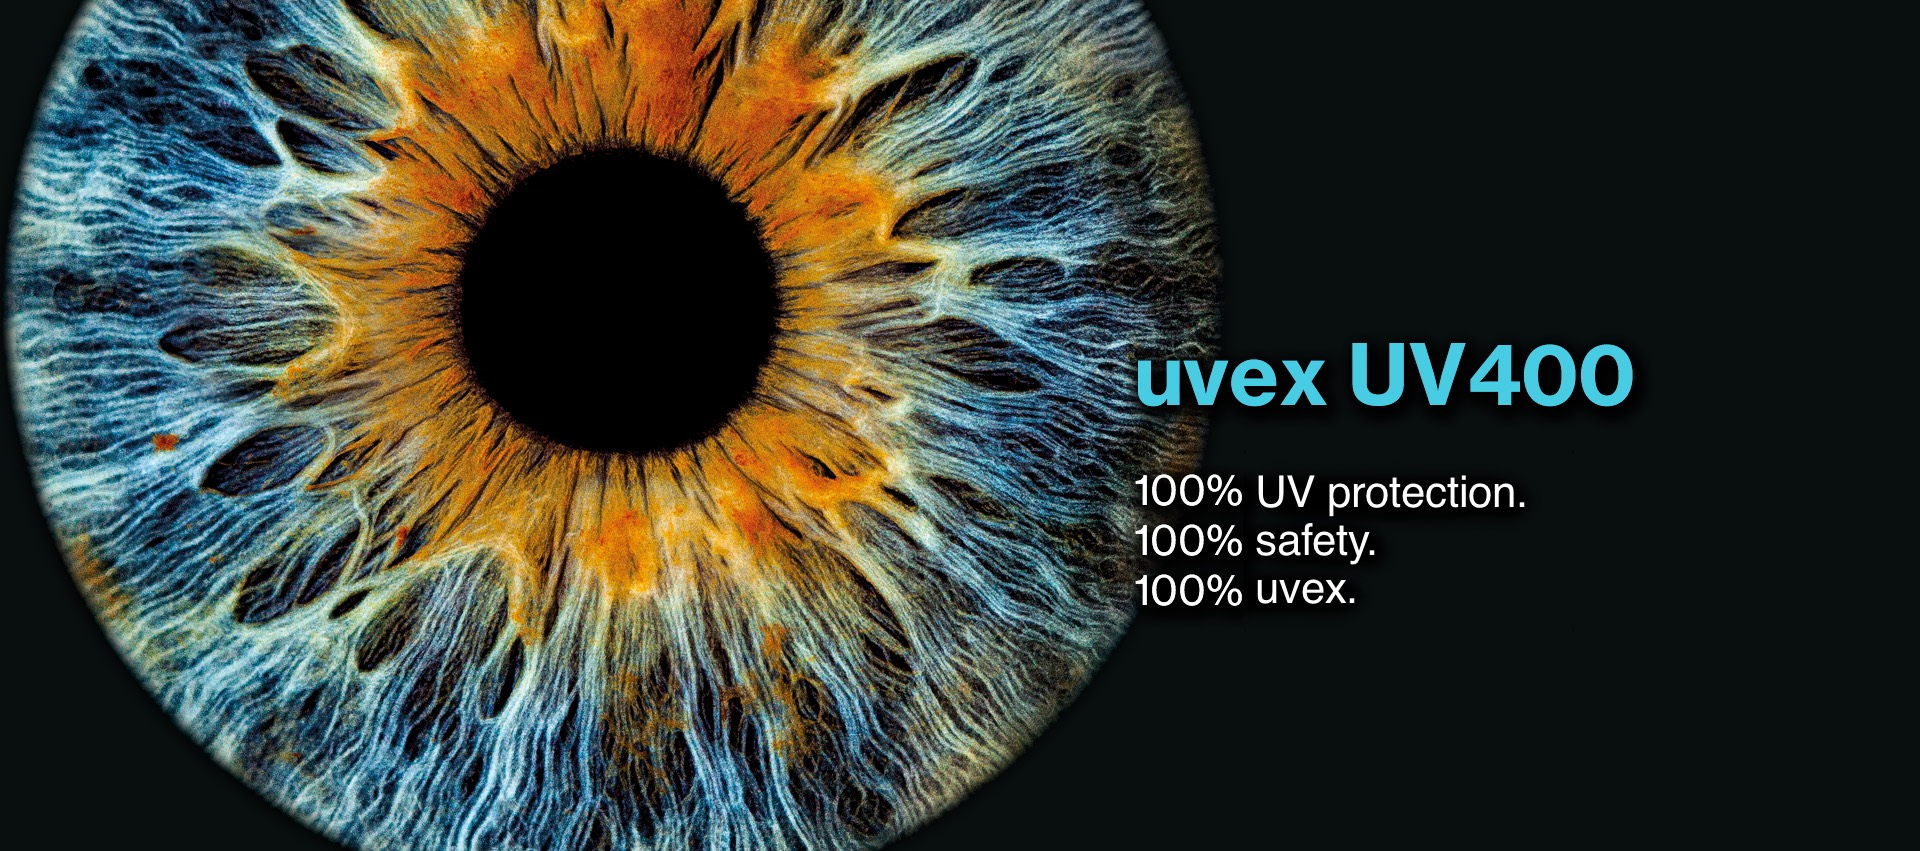 uvex UV400 — 100% protection against UVB and UVA radiation